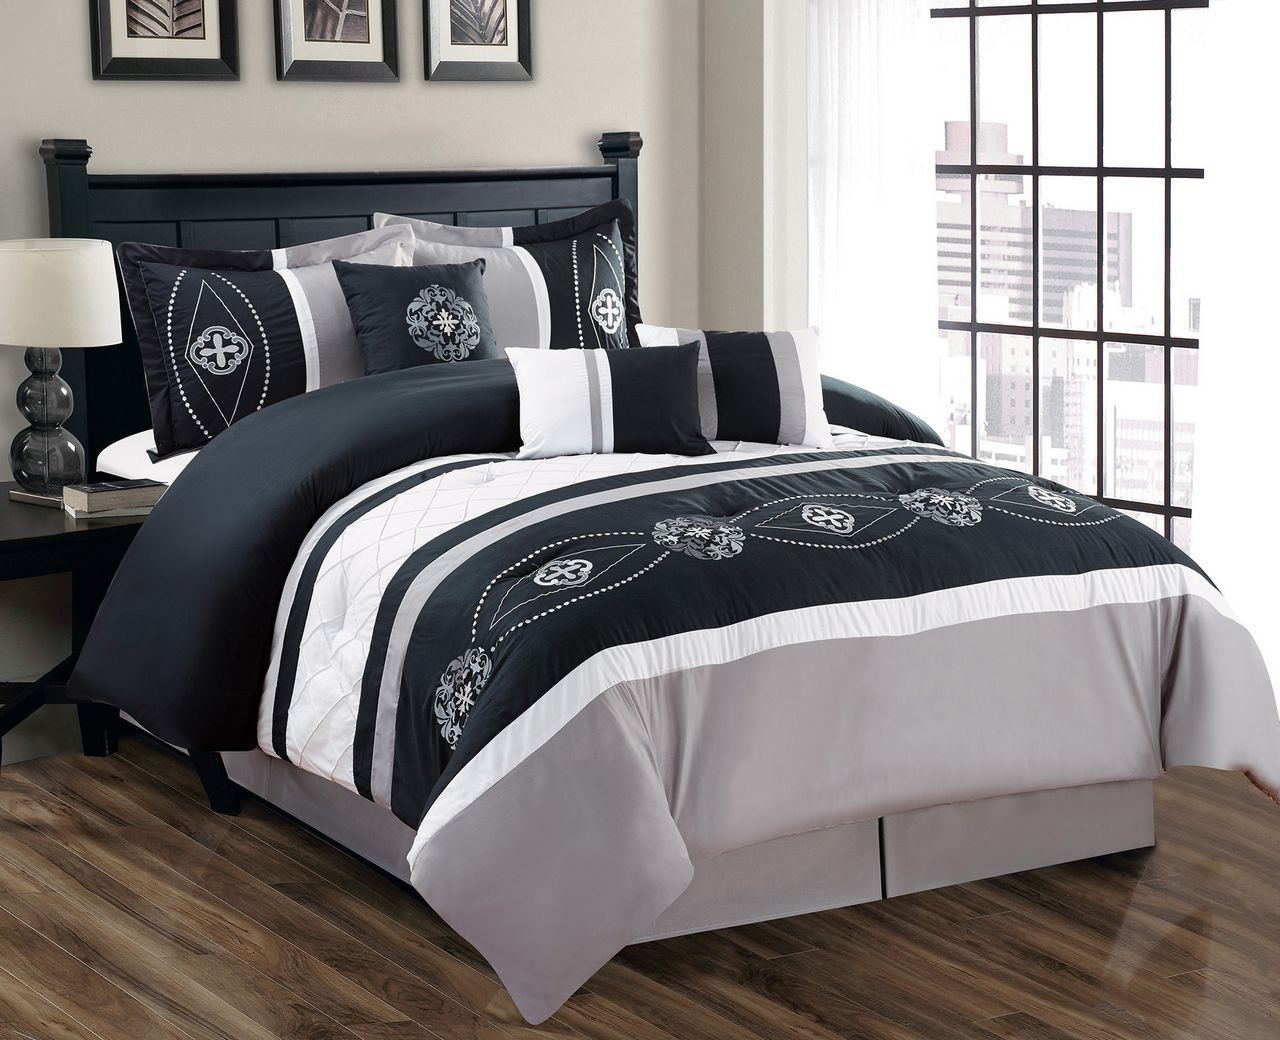 Black White Comforter Sets 28 Images Black And White